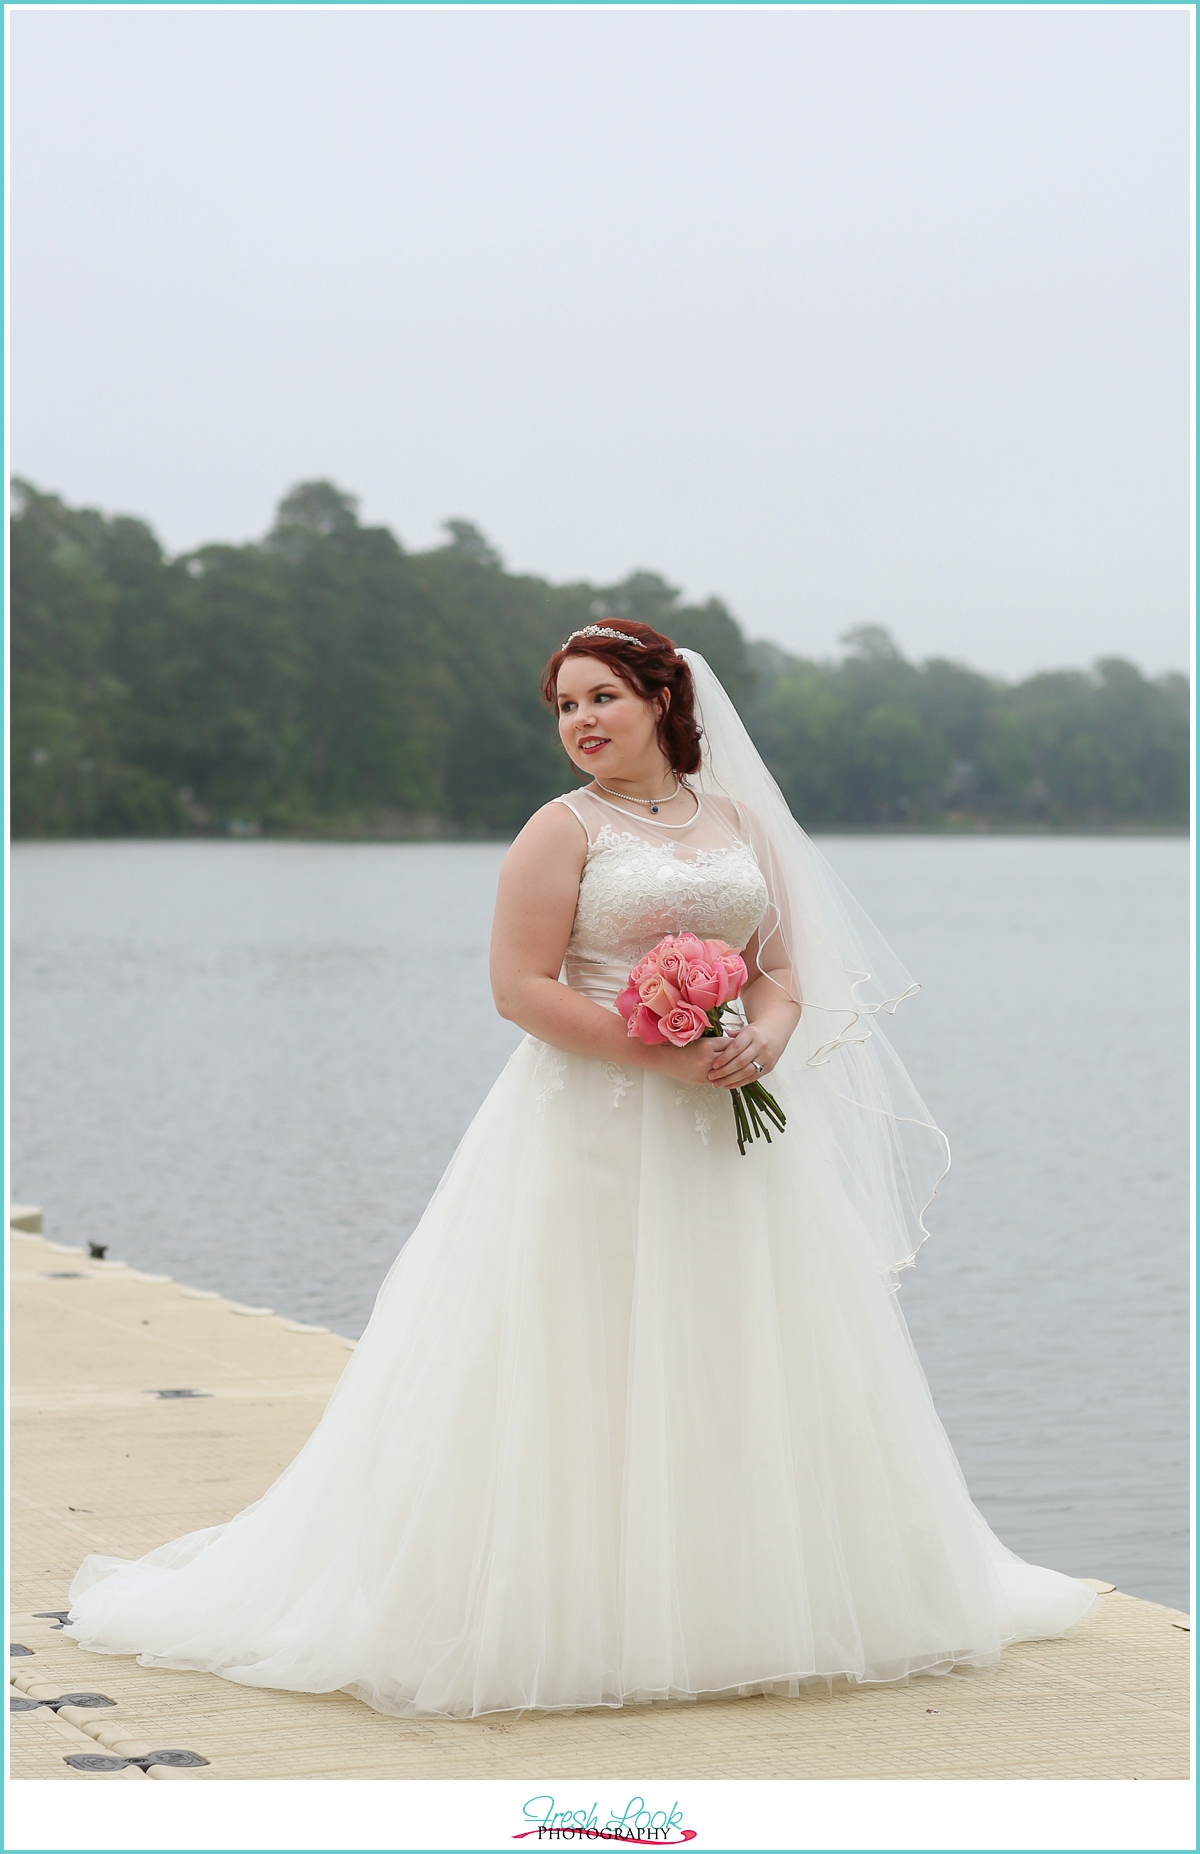 Lake Lawson bridal shoot